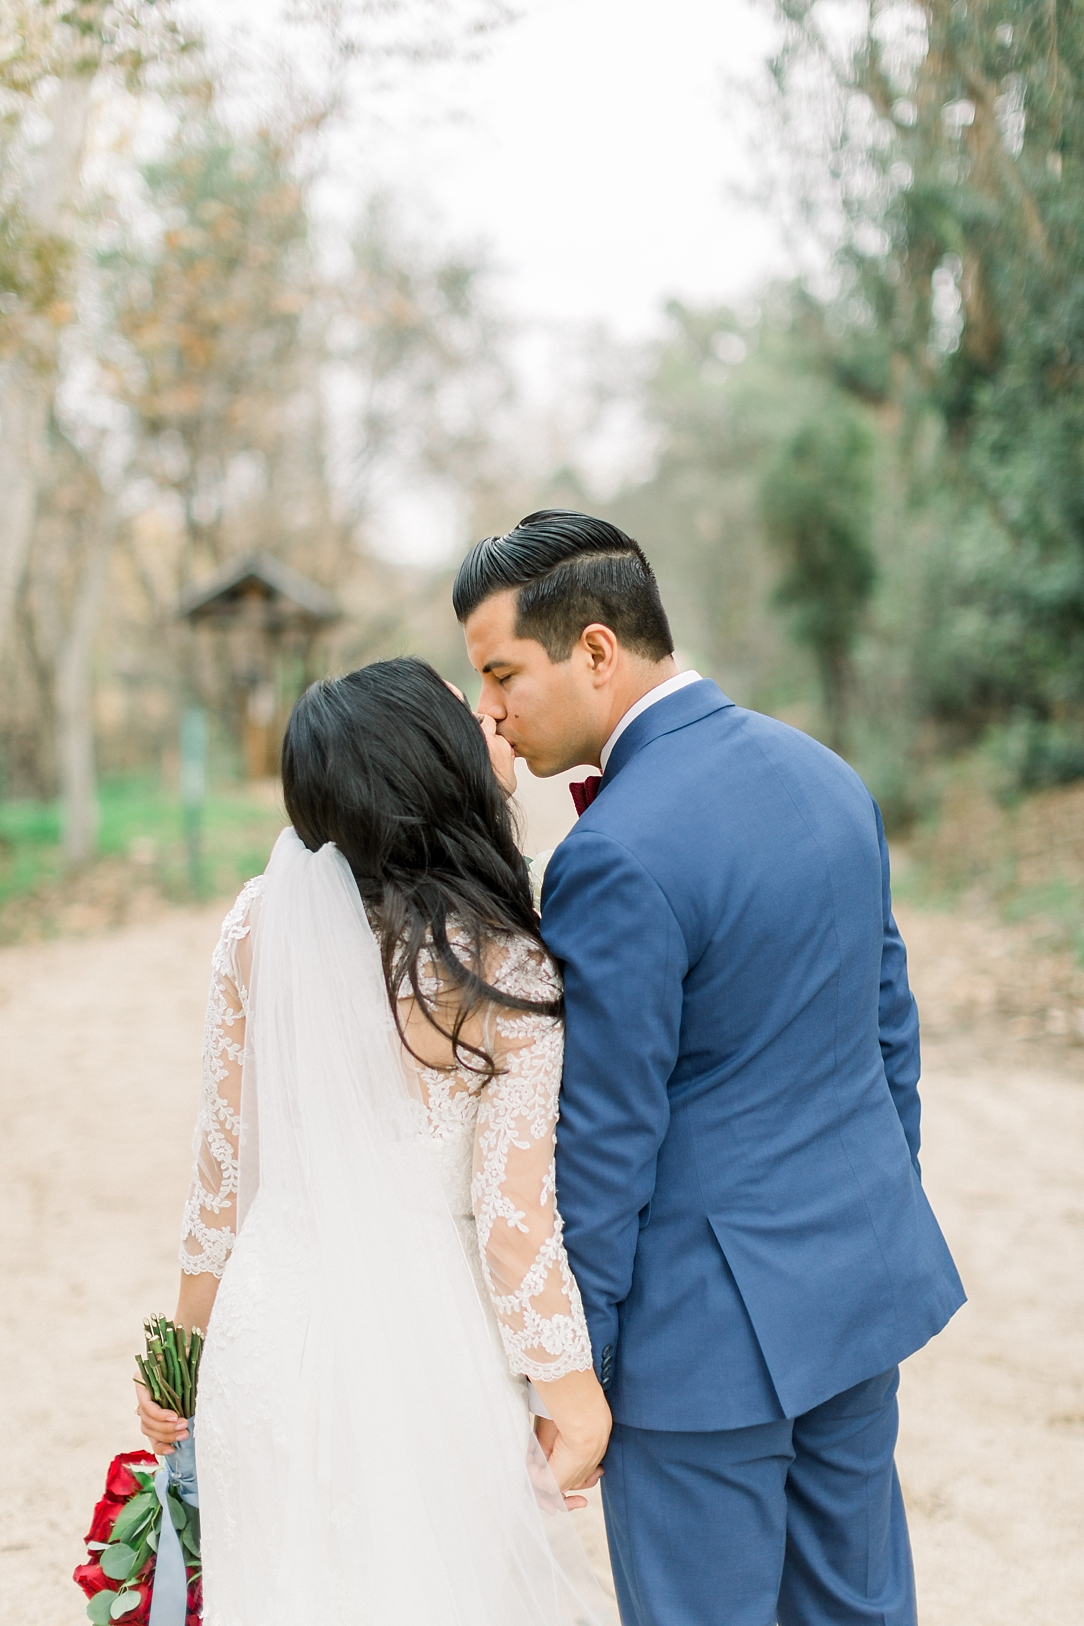 A Vintage Inspired Wedding At Santiago Oaks Regional Park And The Vintage Rose By Natural Light Photographer Madison Ellis Photography. (47)